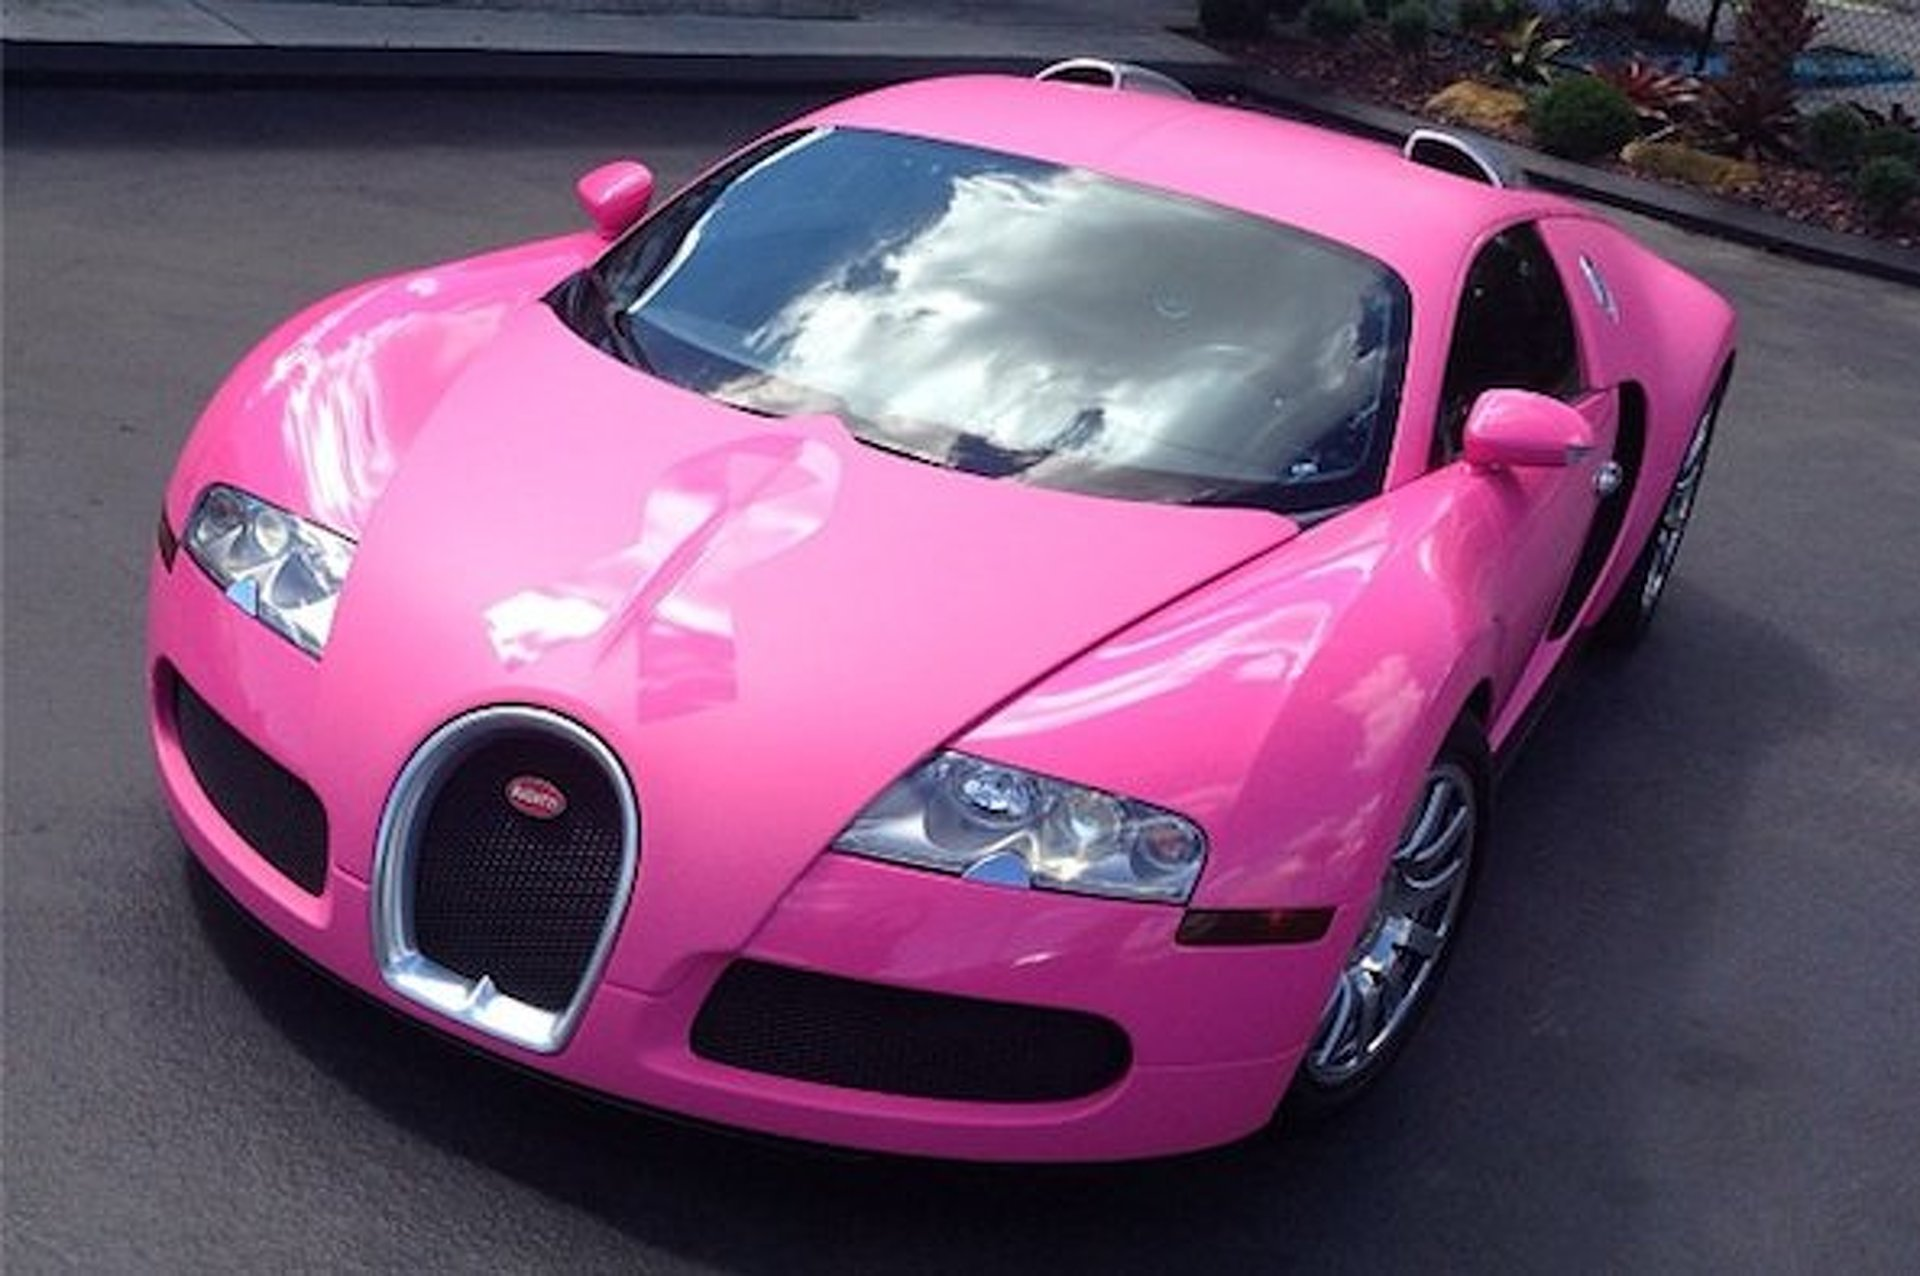 Flo Rida's Bugatti Goes Pink for Breast Cancer Awareness